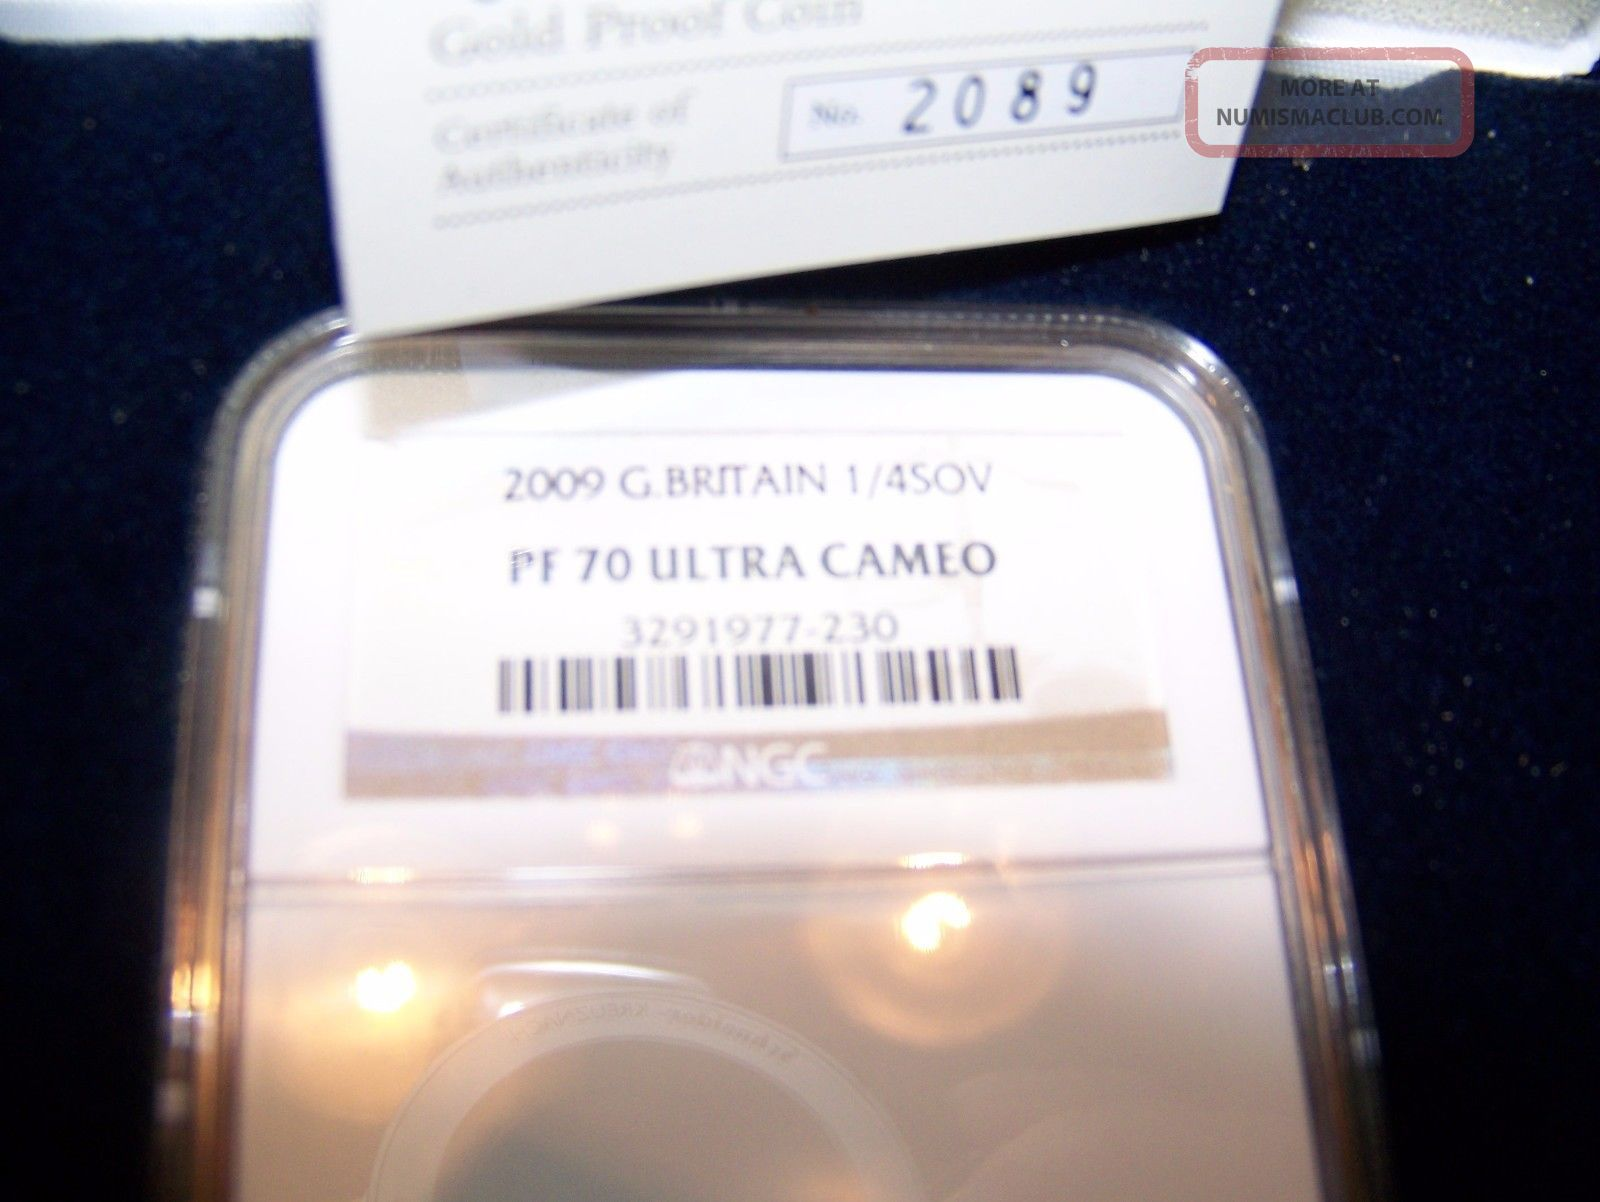 2009 Great Britain 1/4 Sovereign Gold Coin,  Ngc Pf 70 Ultra Cameo Royal UK (Great Britain) photo